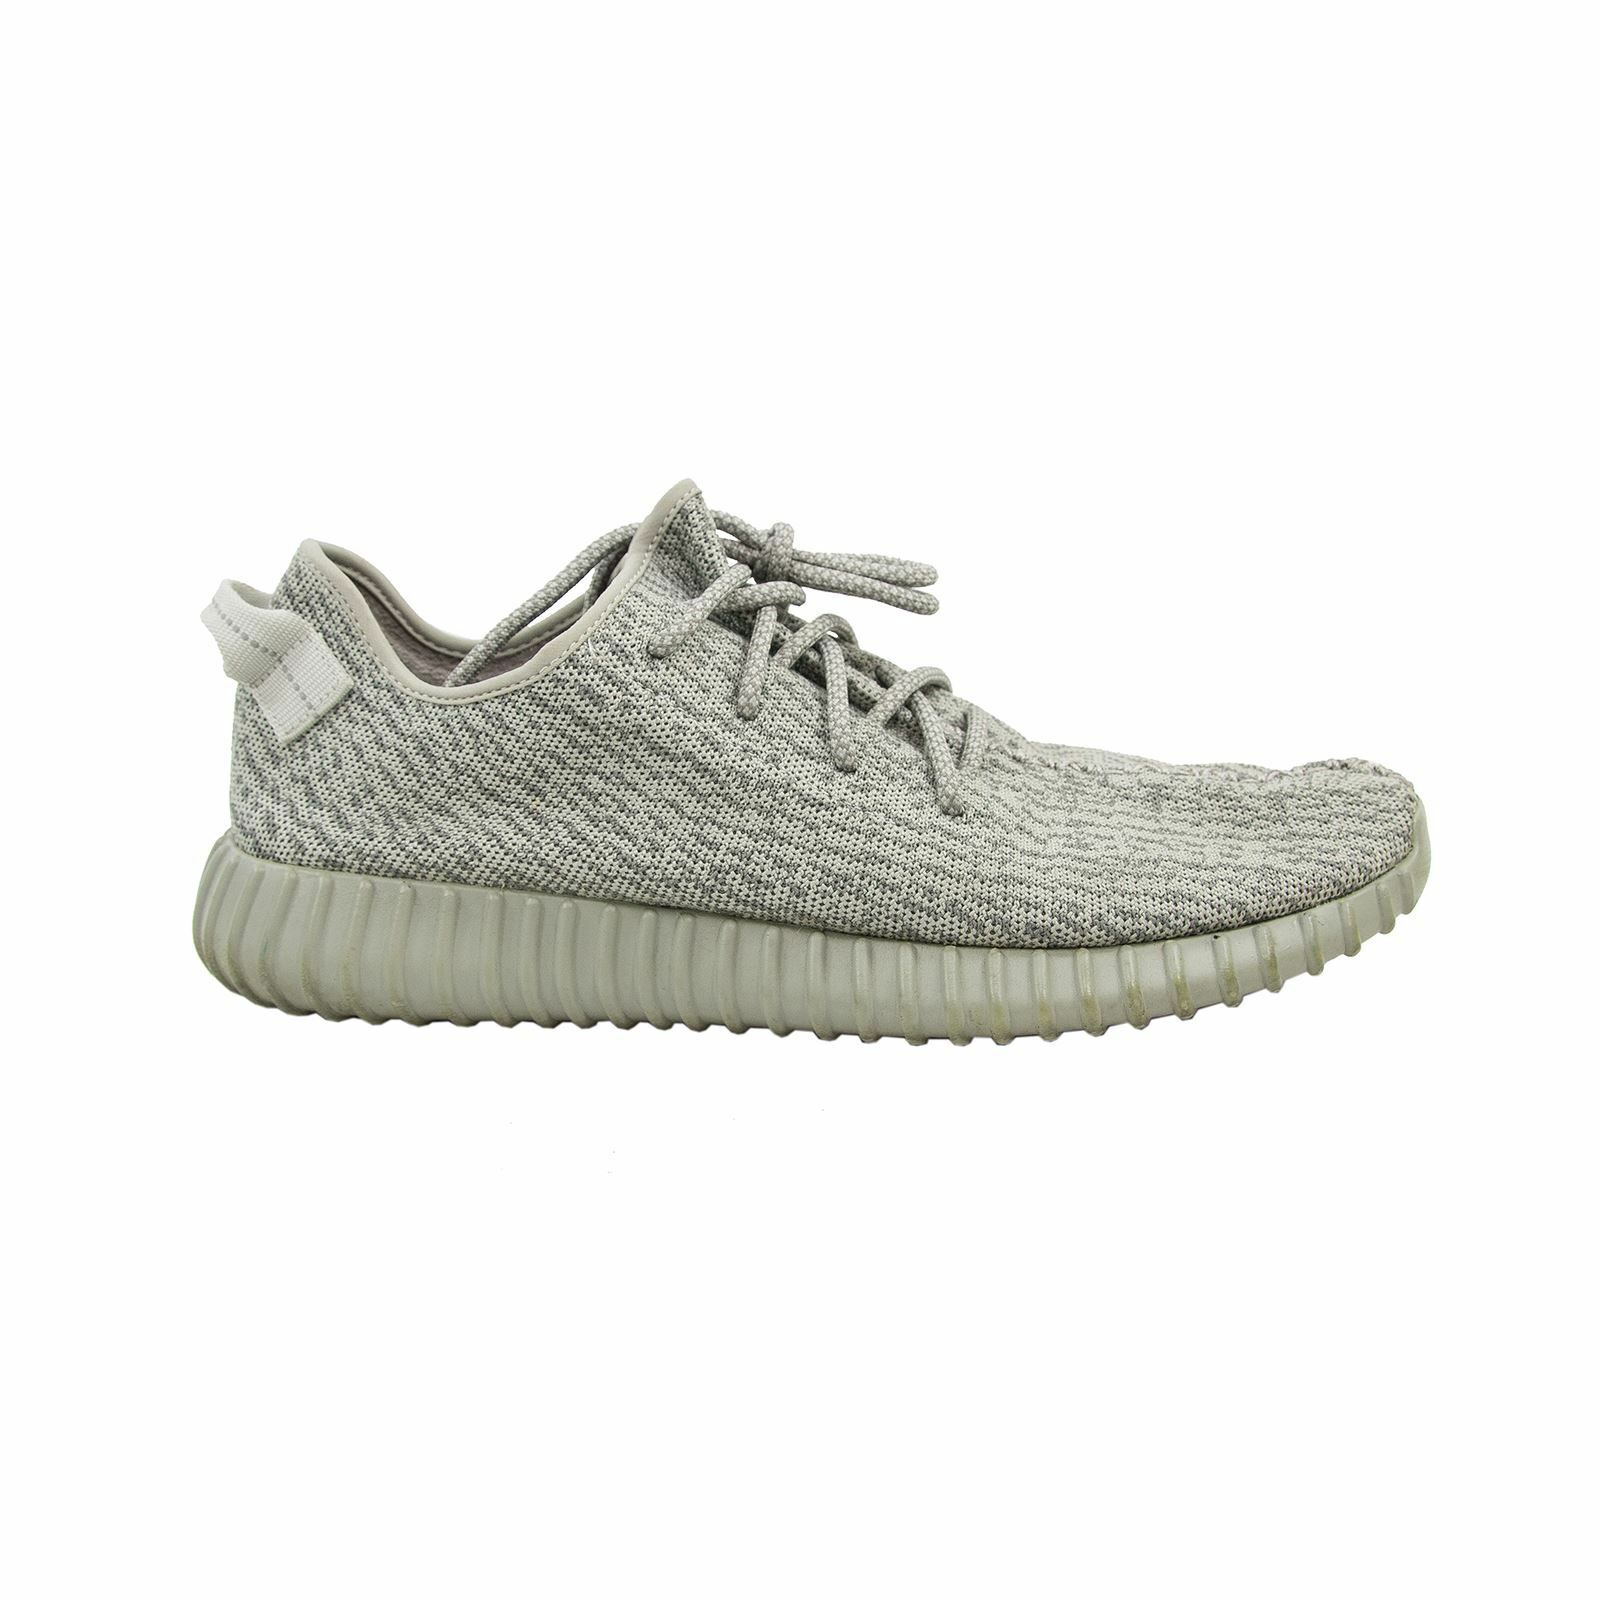 Adidas Yeezy Boost 350 Moonrock Grey AQ2660 Agagra Kanye West Sneakers shoes 12